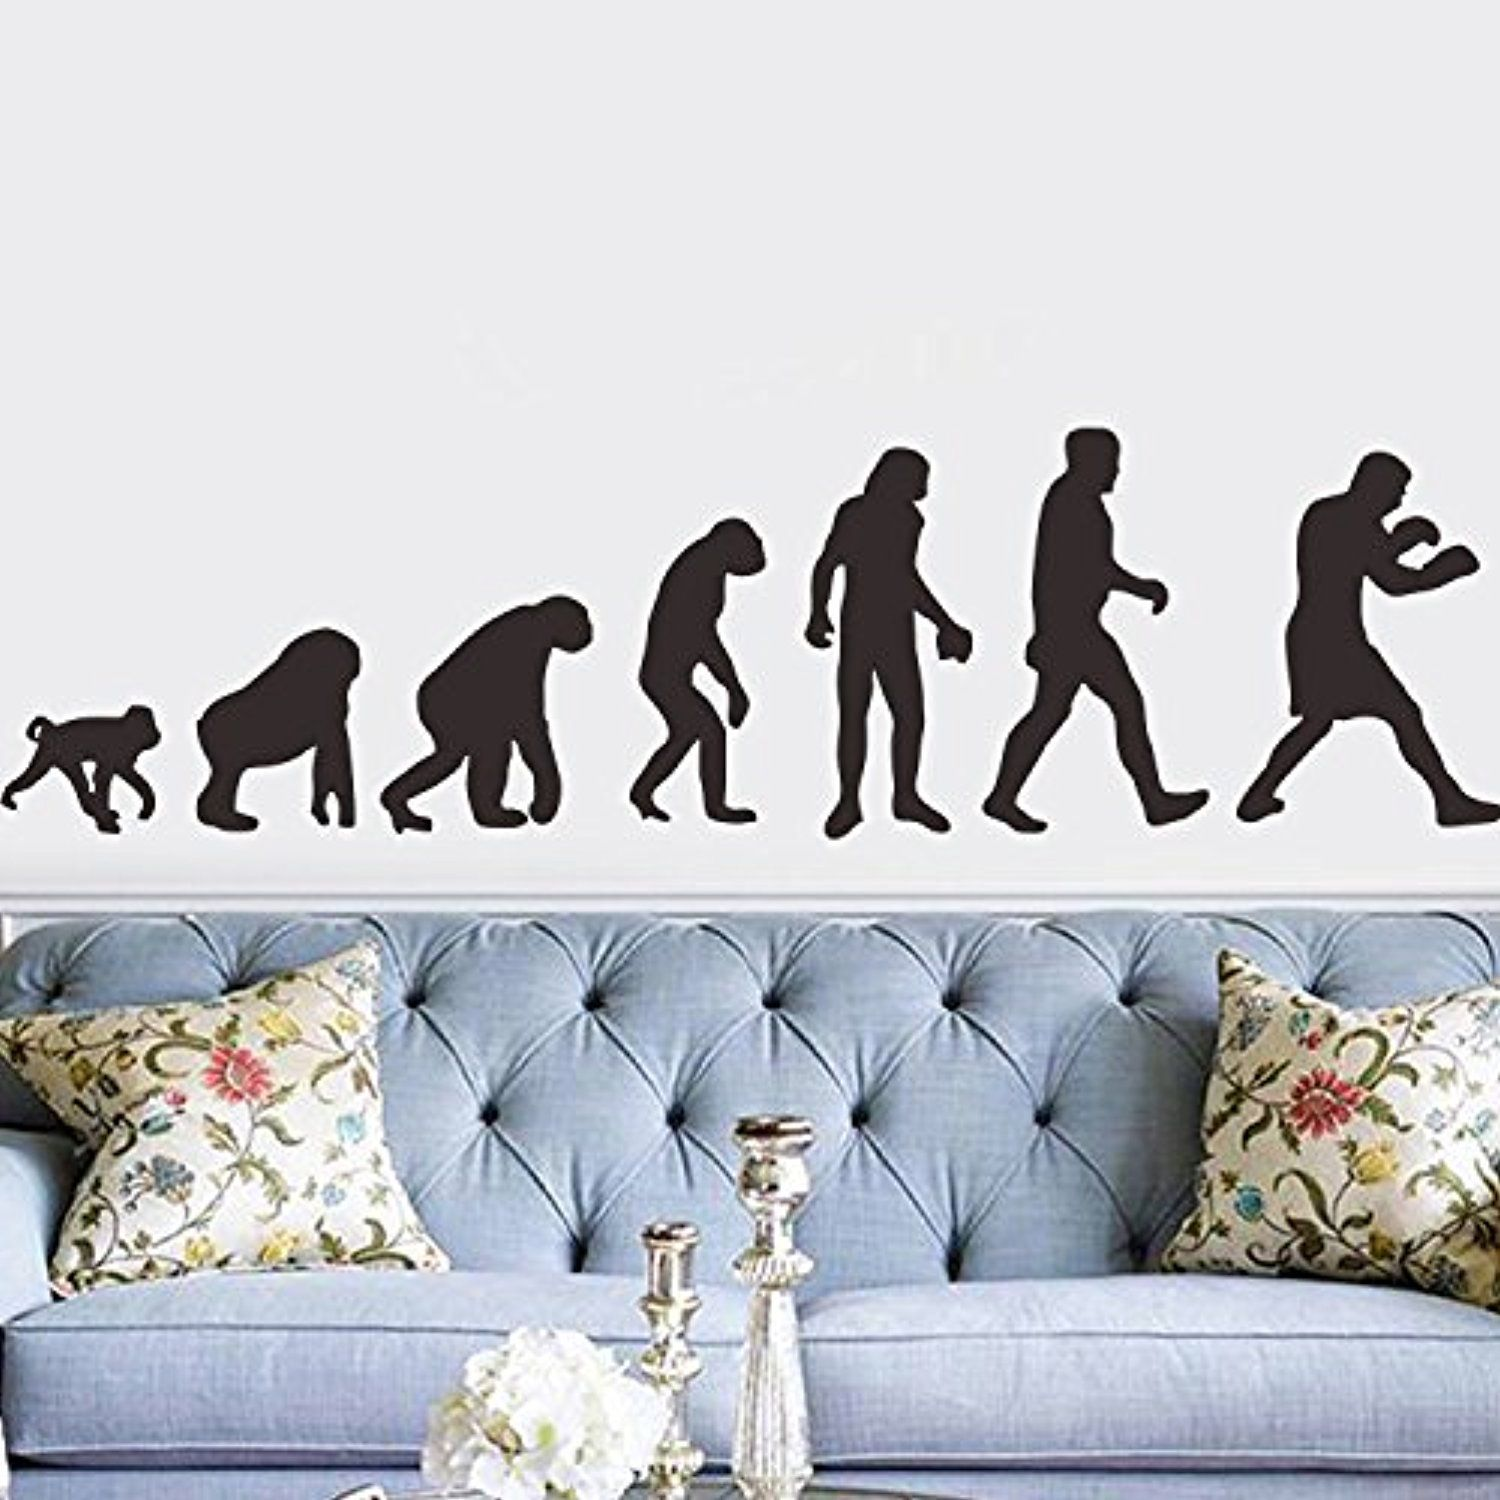 DecalMile Black Silhouette Ape Human Evolution Wall Stickers ...